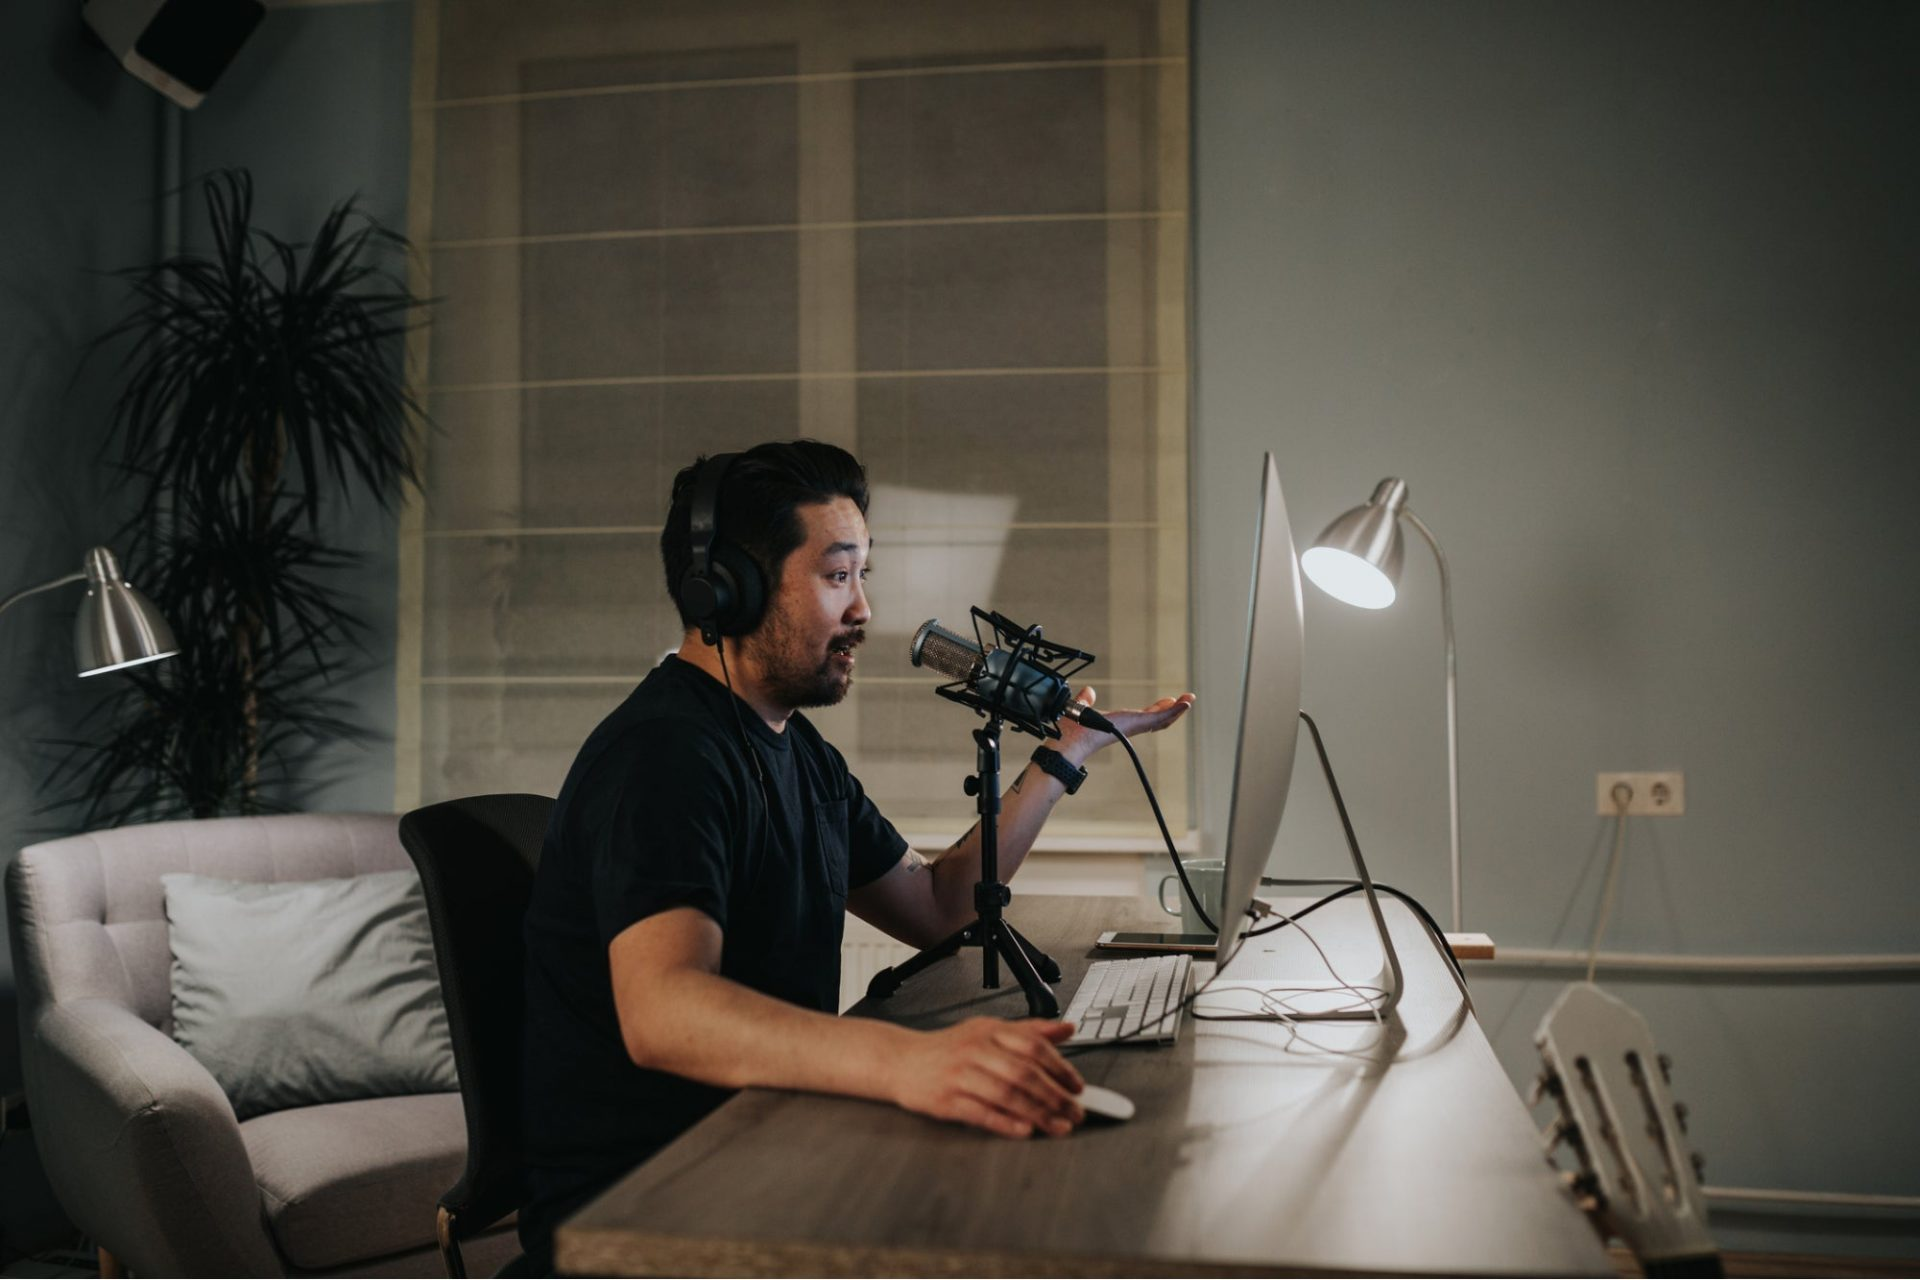 Want to Advertise Your Business on Podcasts? Here's How to Get Started.